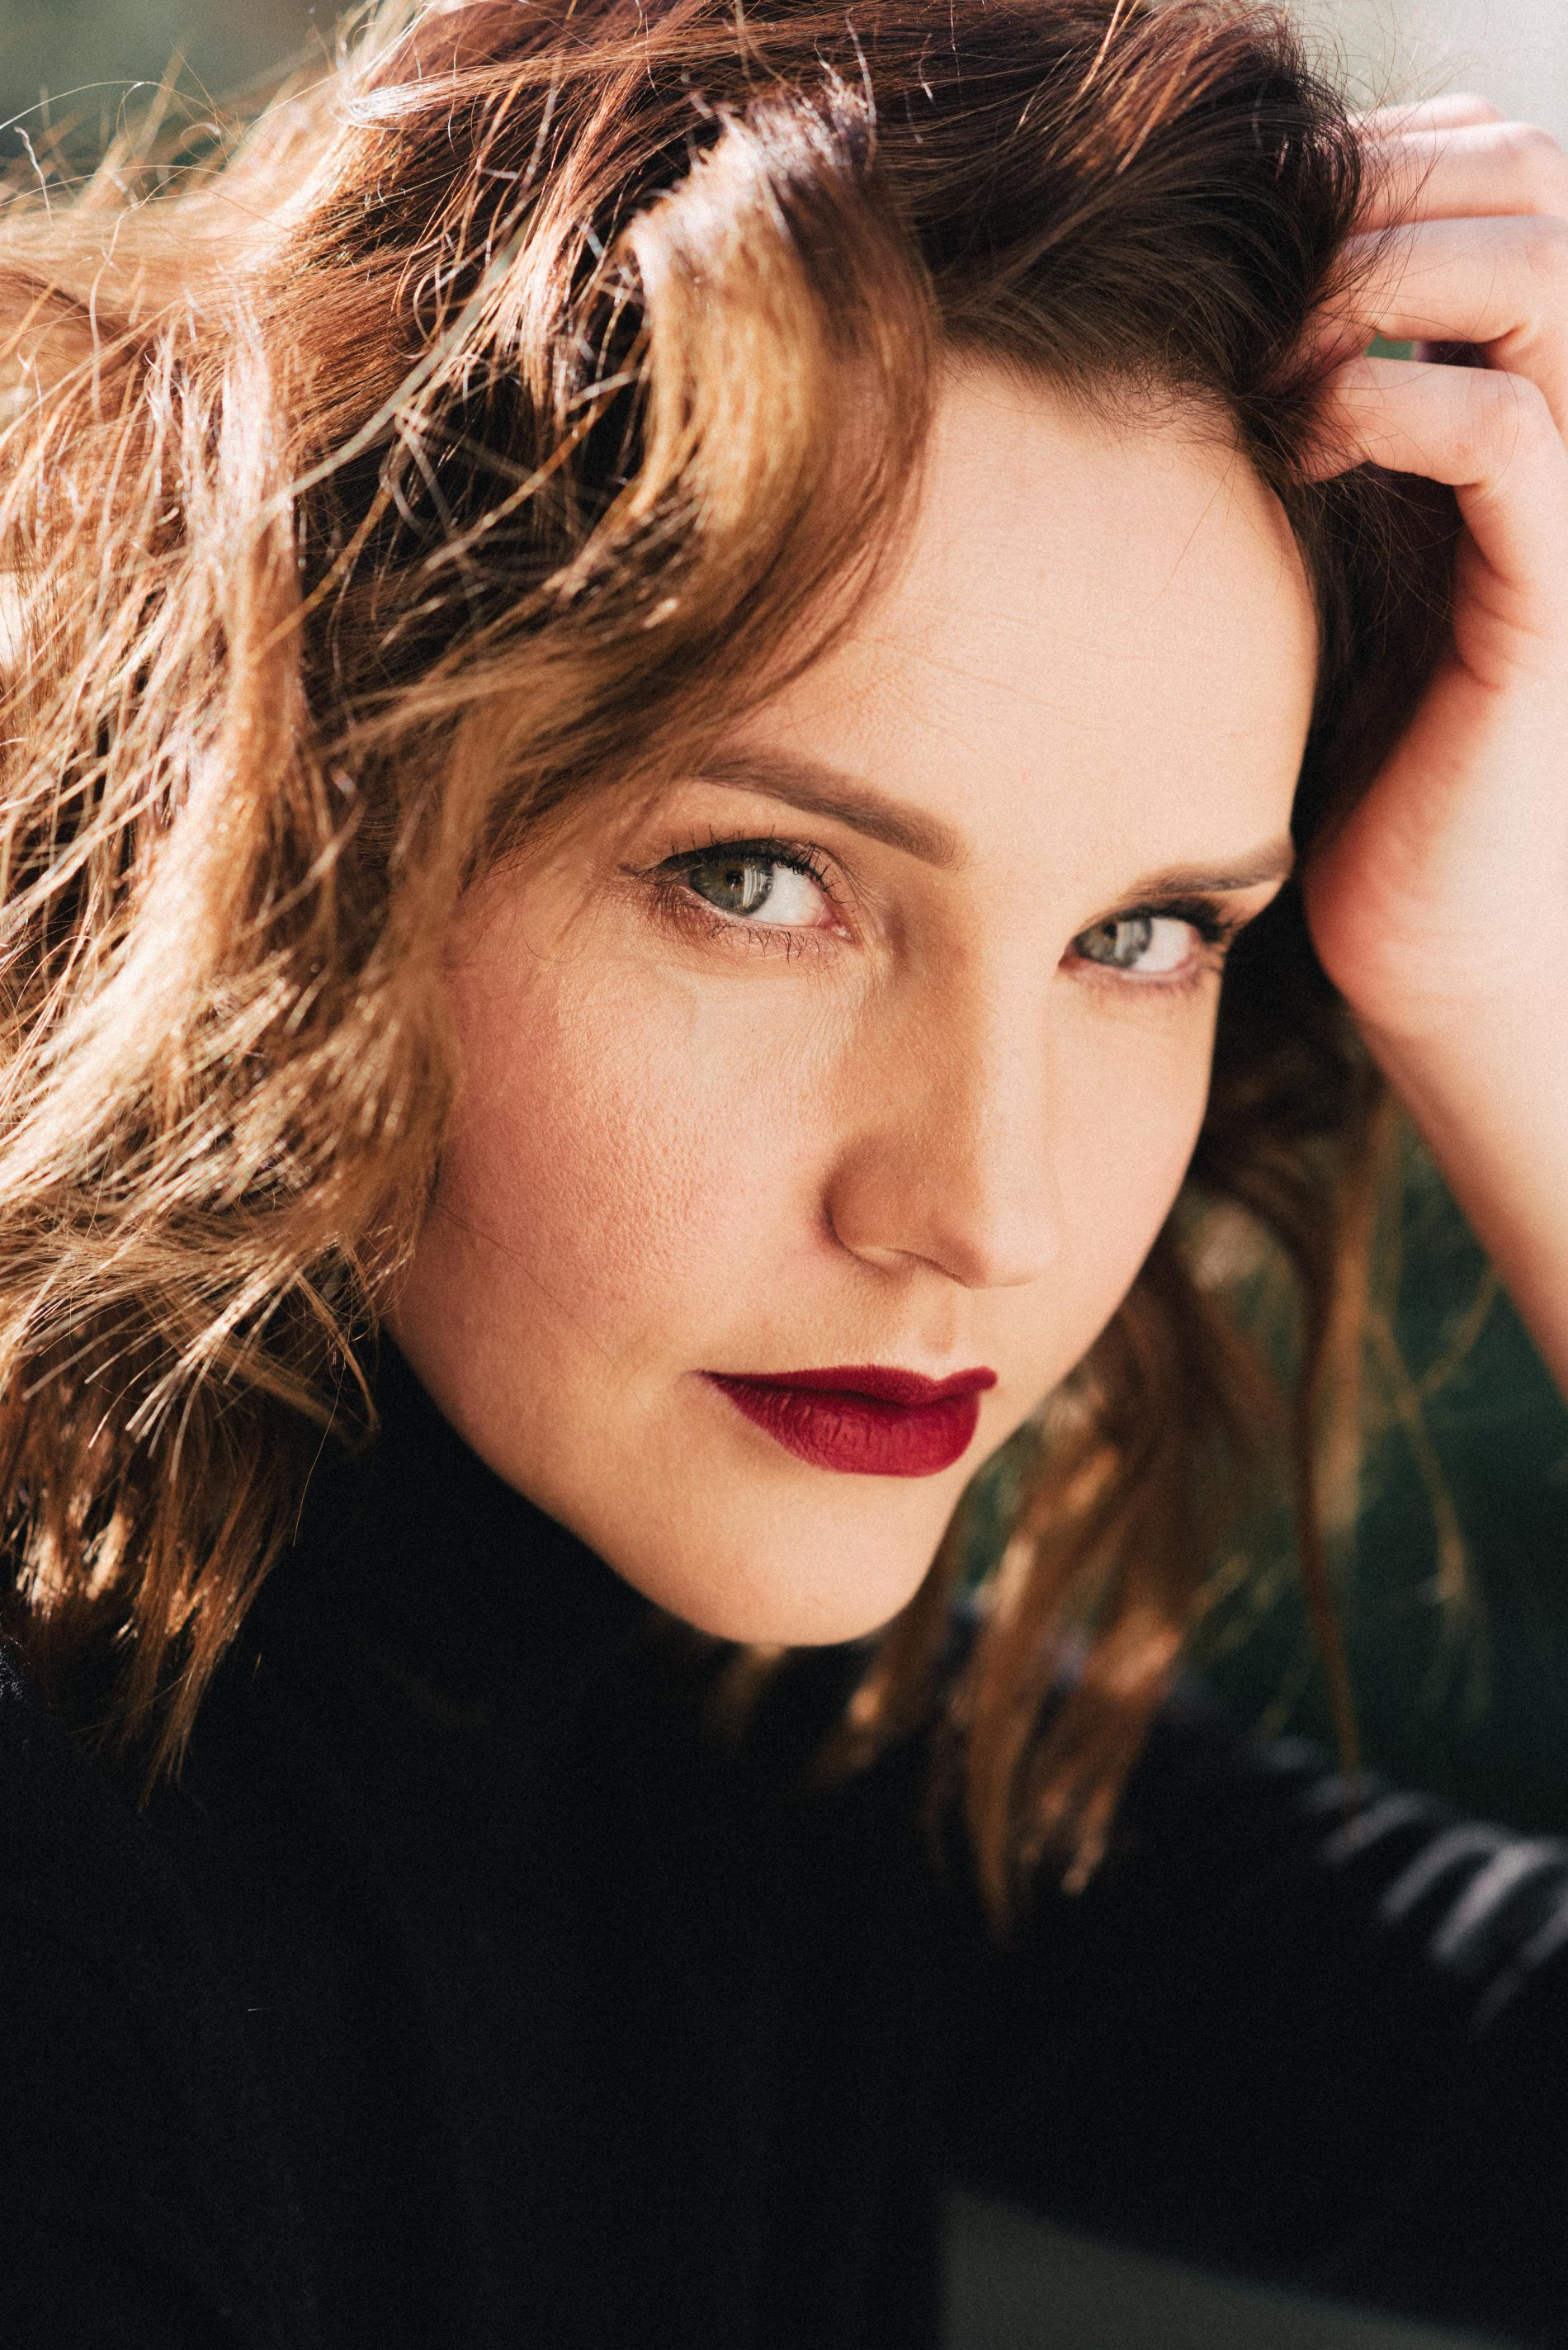 Woman with red lips and wavy hair in sunshine